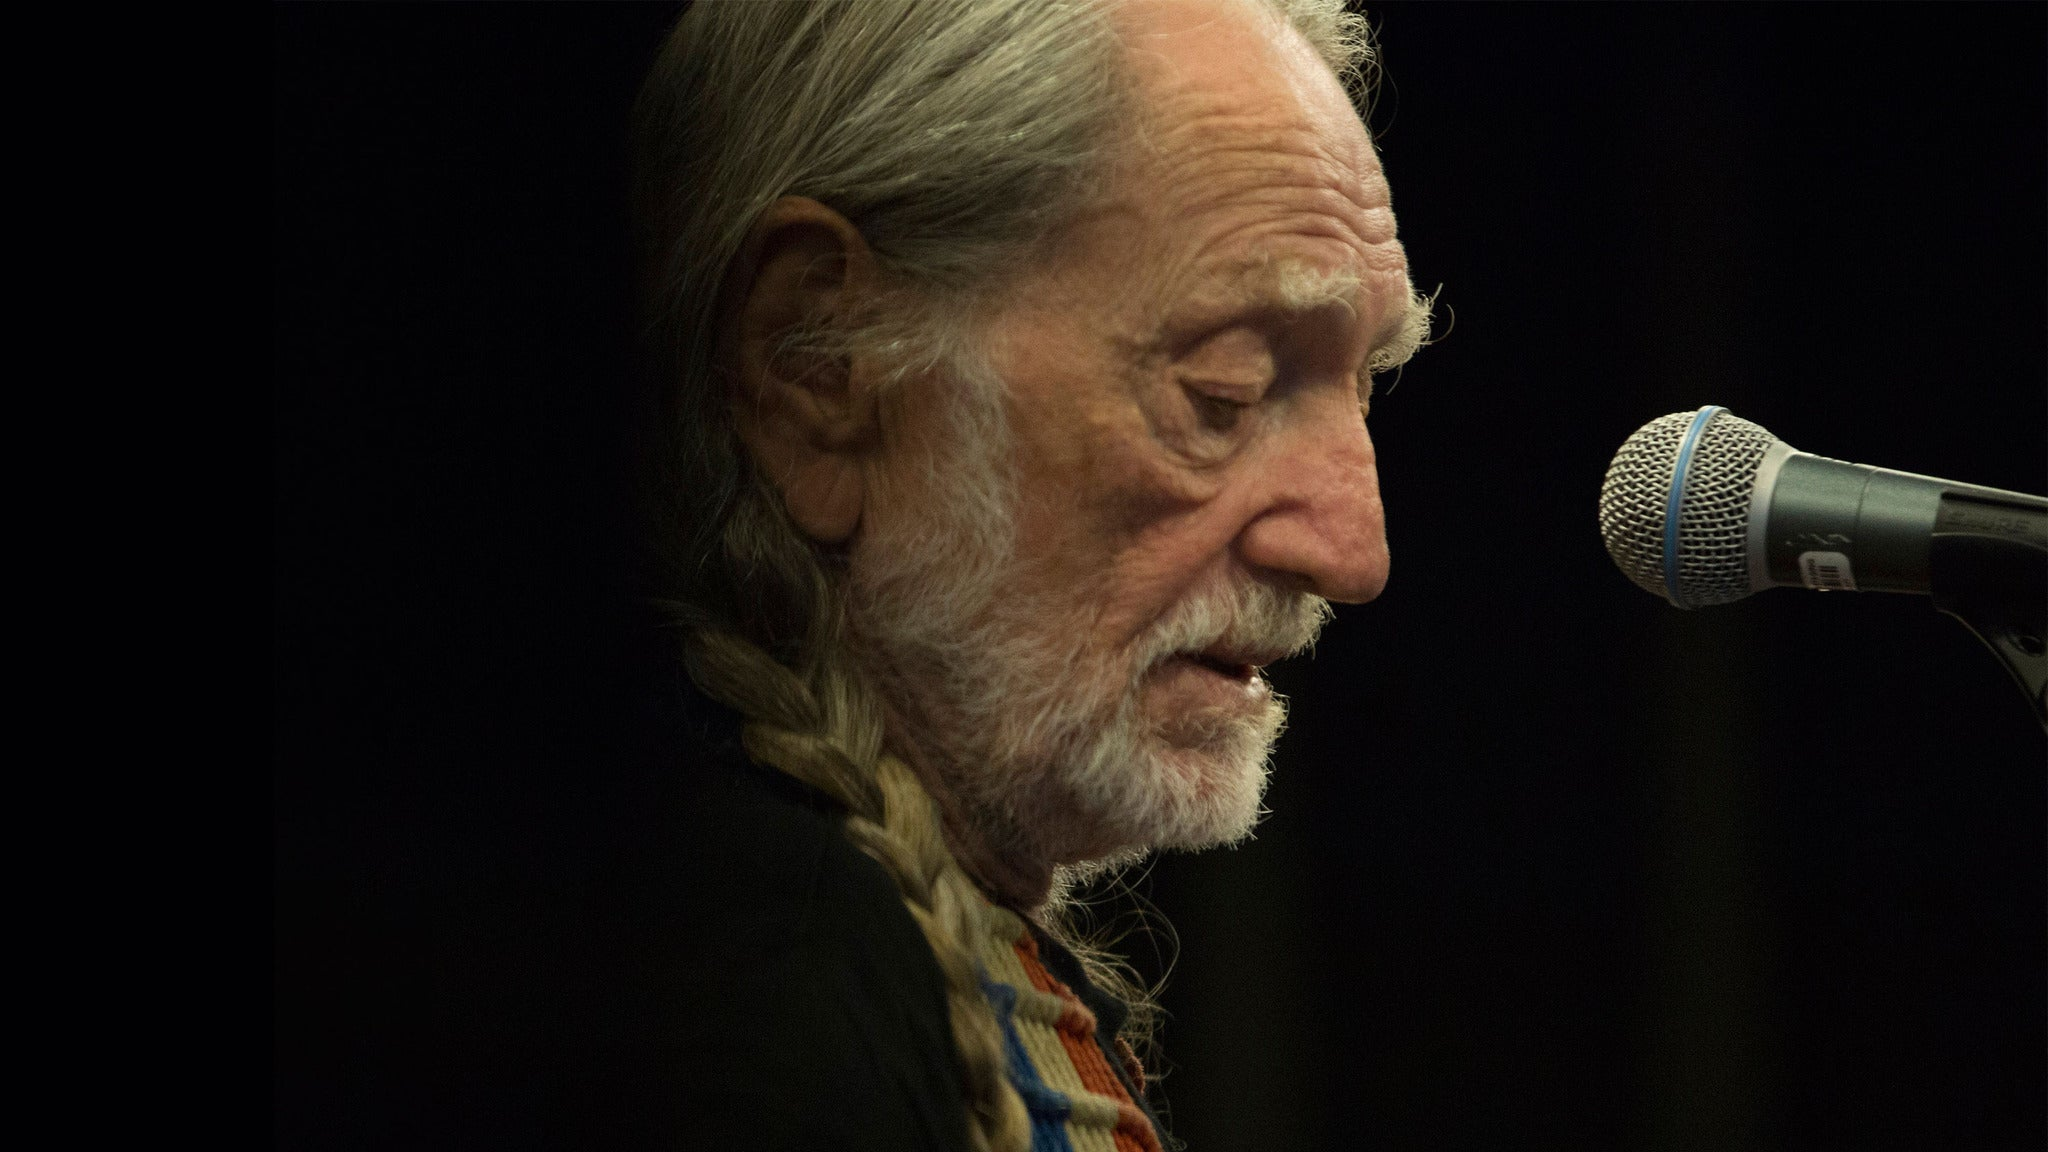 Outlaw Music Festival: Willie Nelson,Robert Plant,Alison Krauss & More